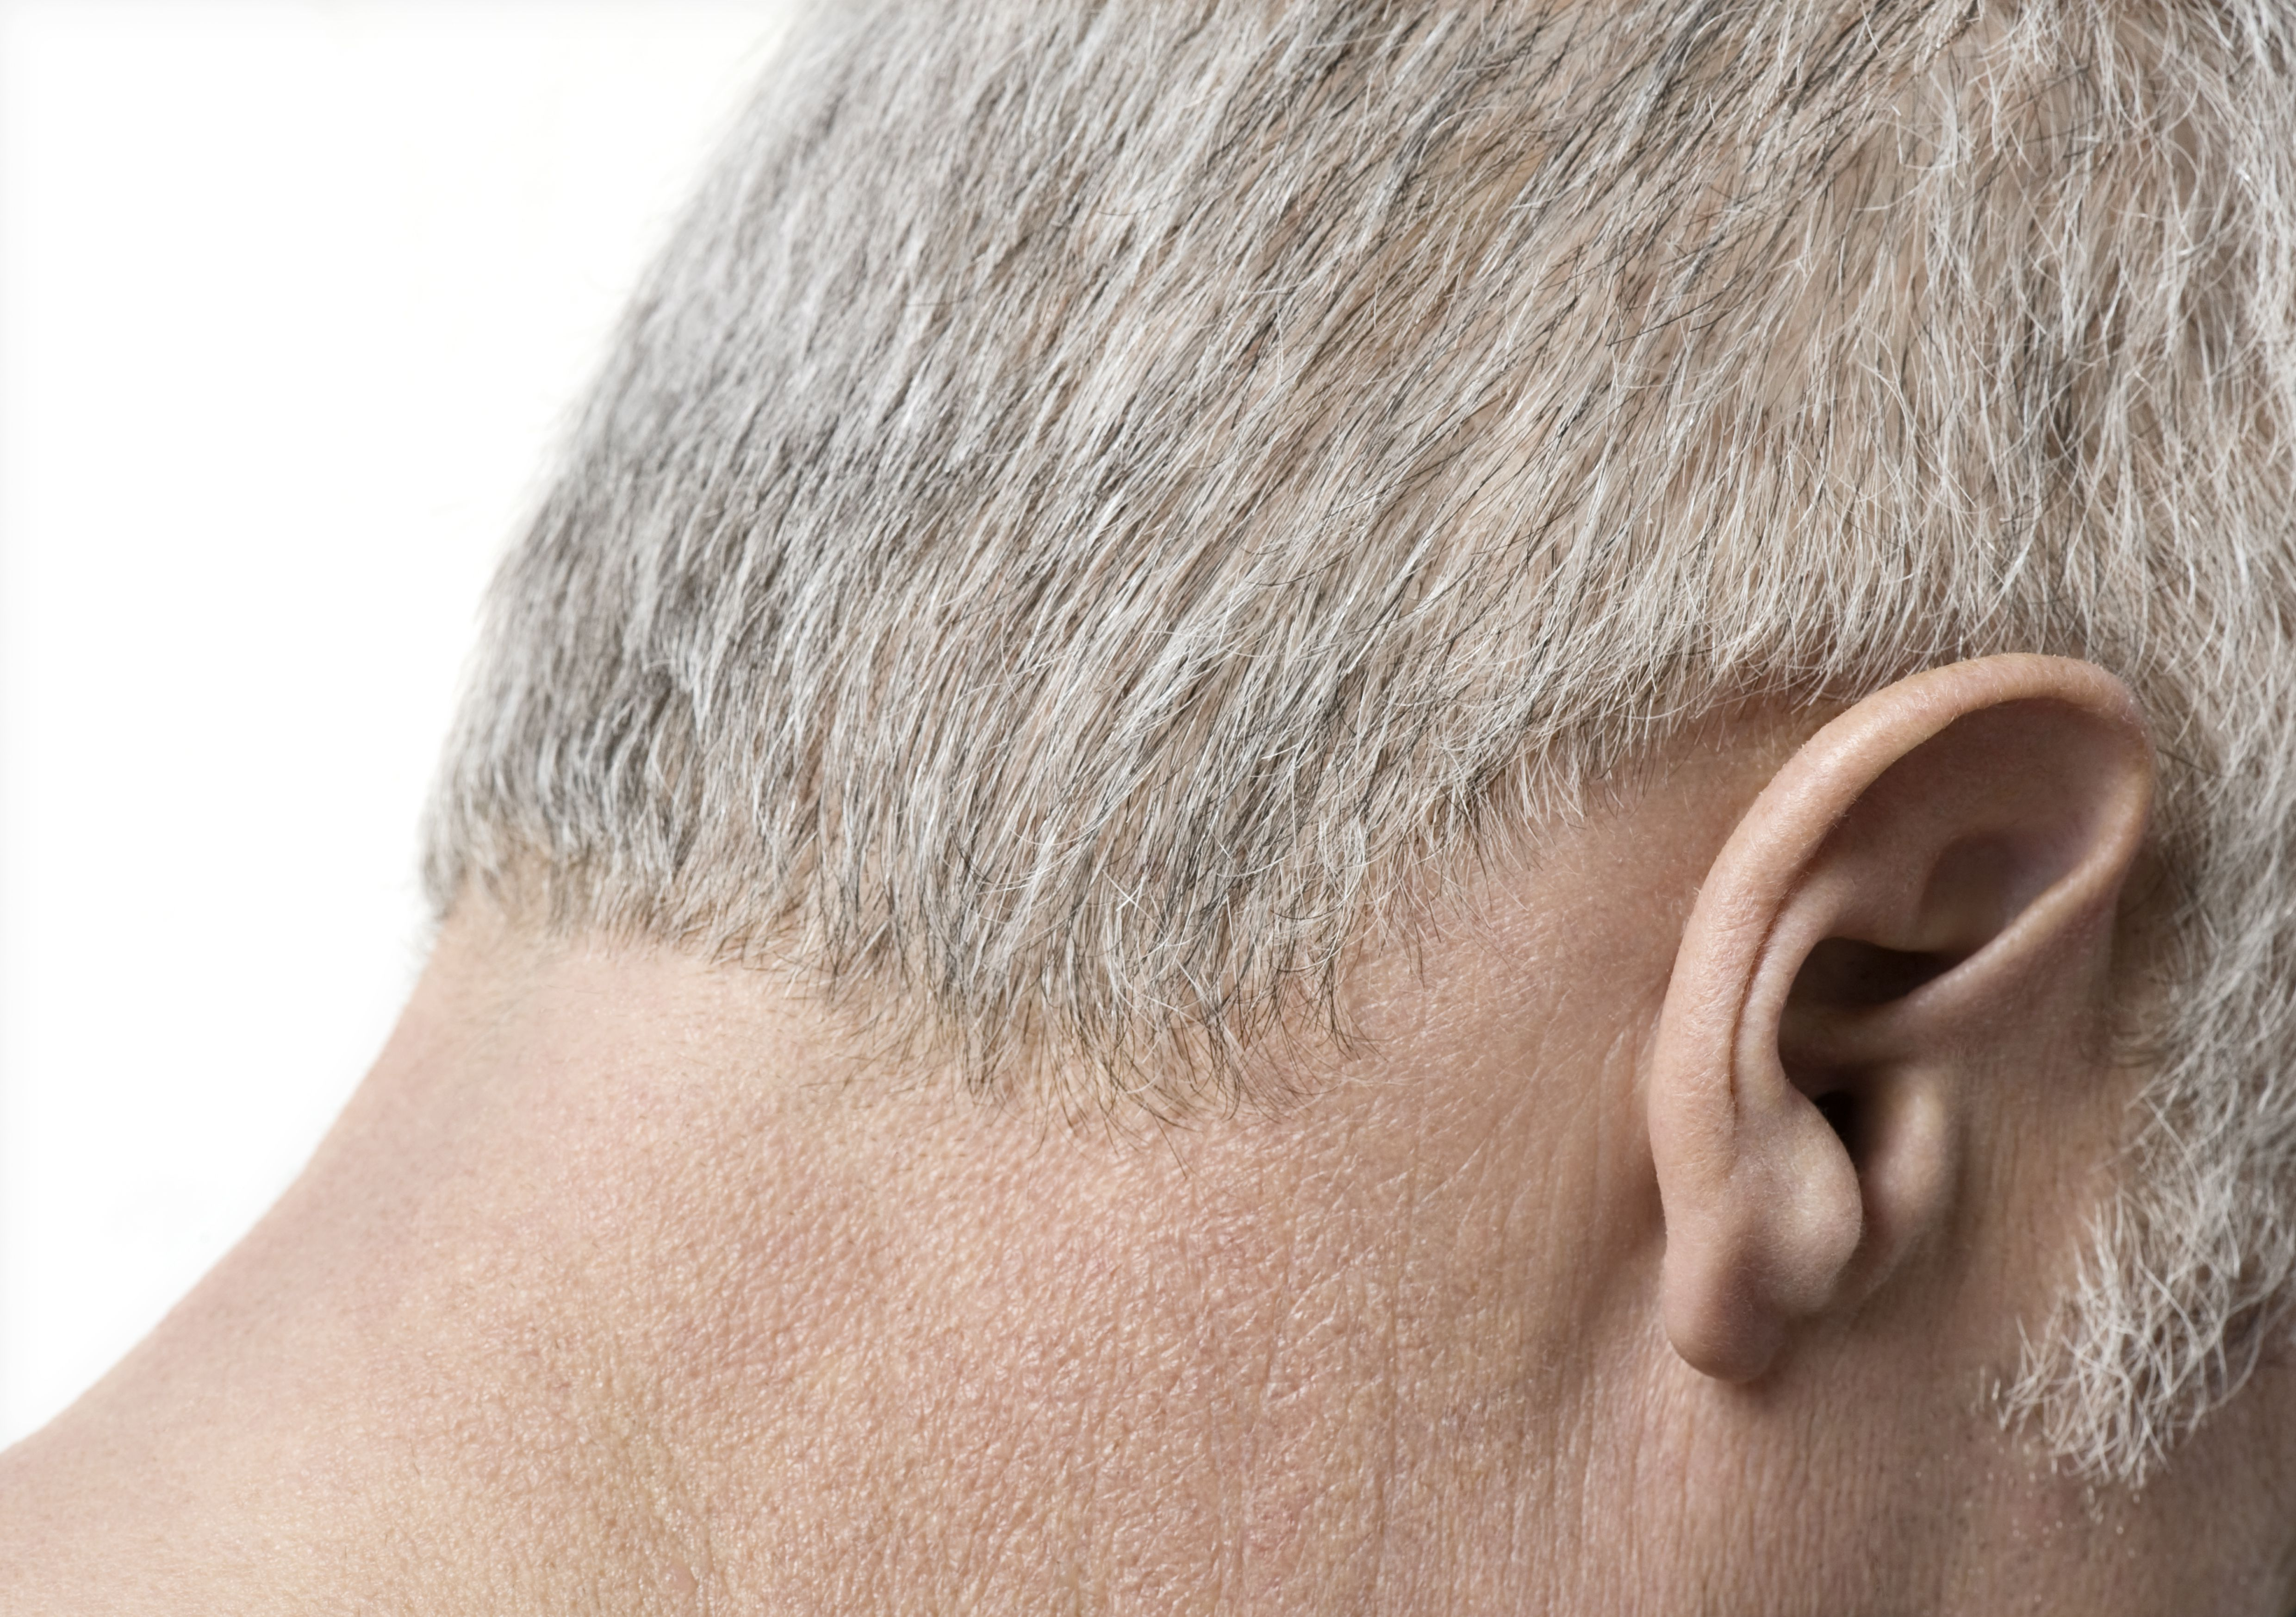 Ear Hair Removal Methods And Tips For Men